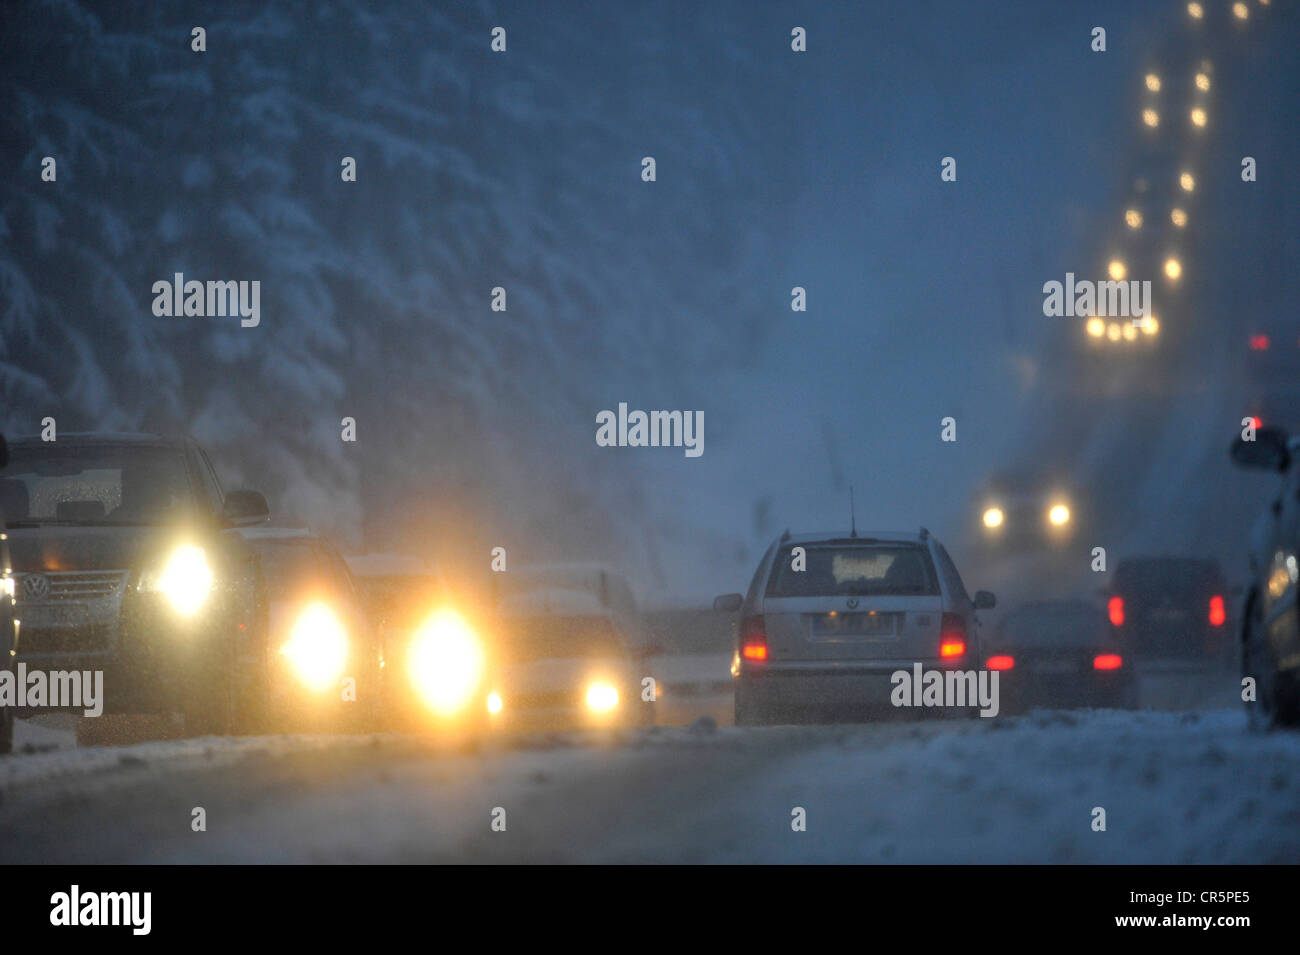 Snow chaos on the B4 federal highway in Harz near Torfhaus, Lower Saxony, Germany, Europe - Stock Image